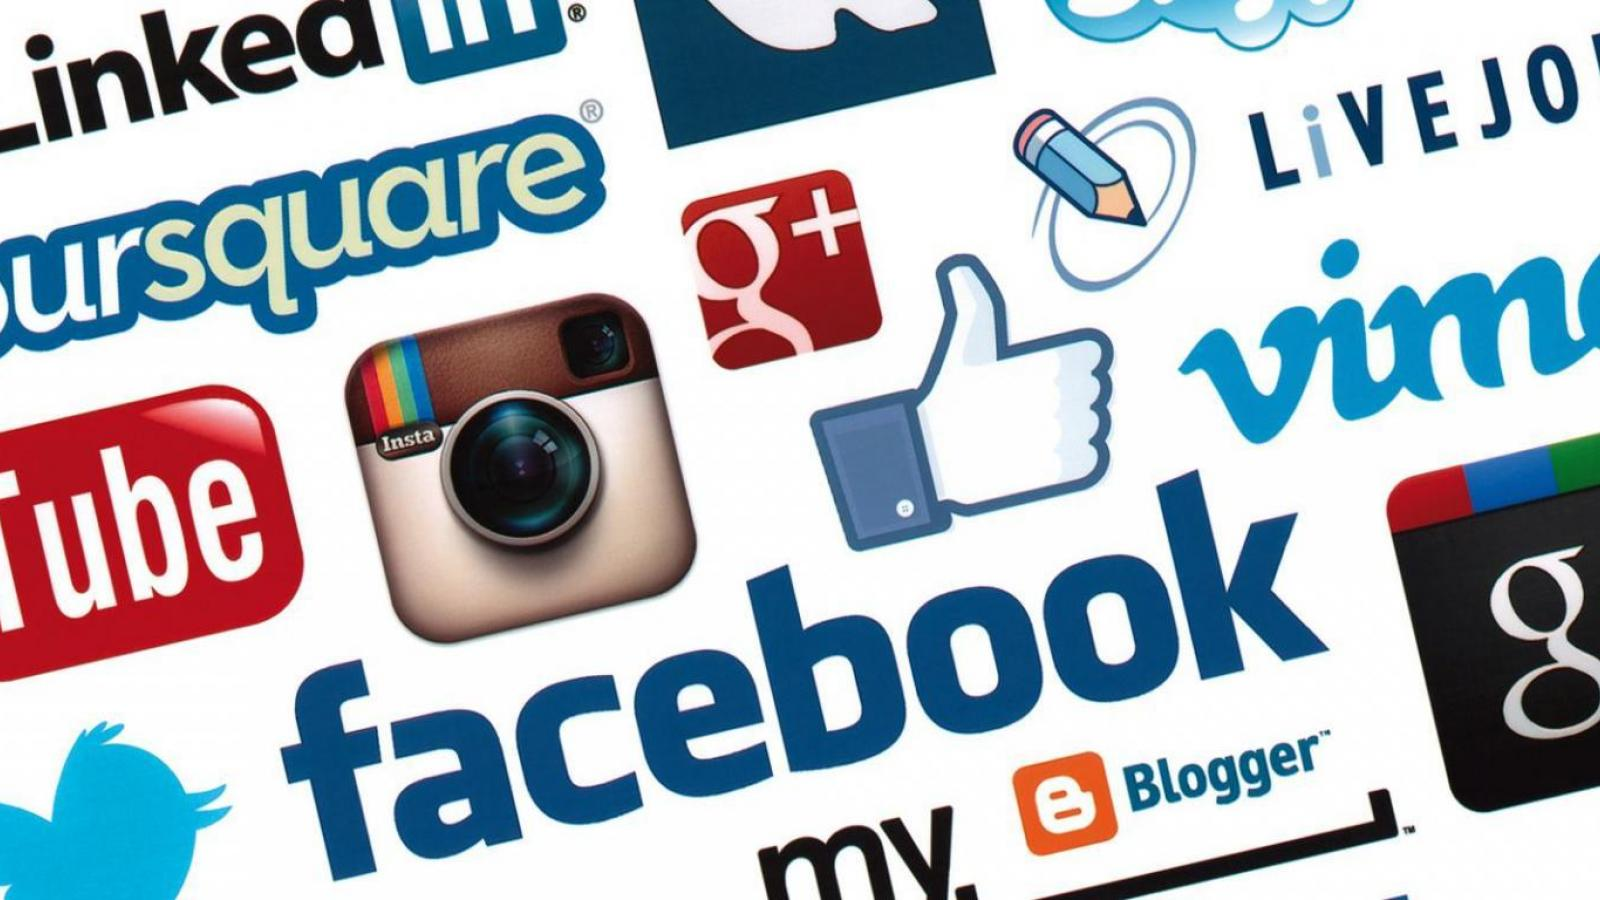 Hotels Sezz on social networks